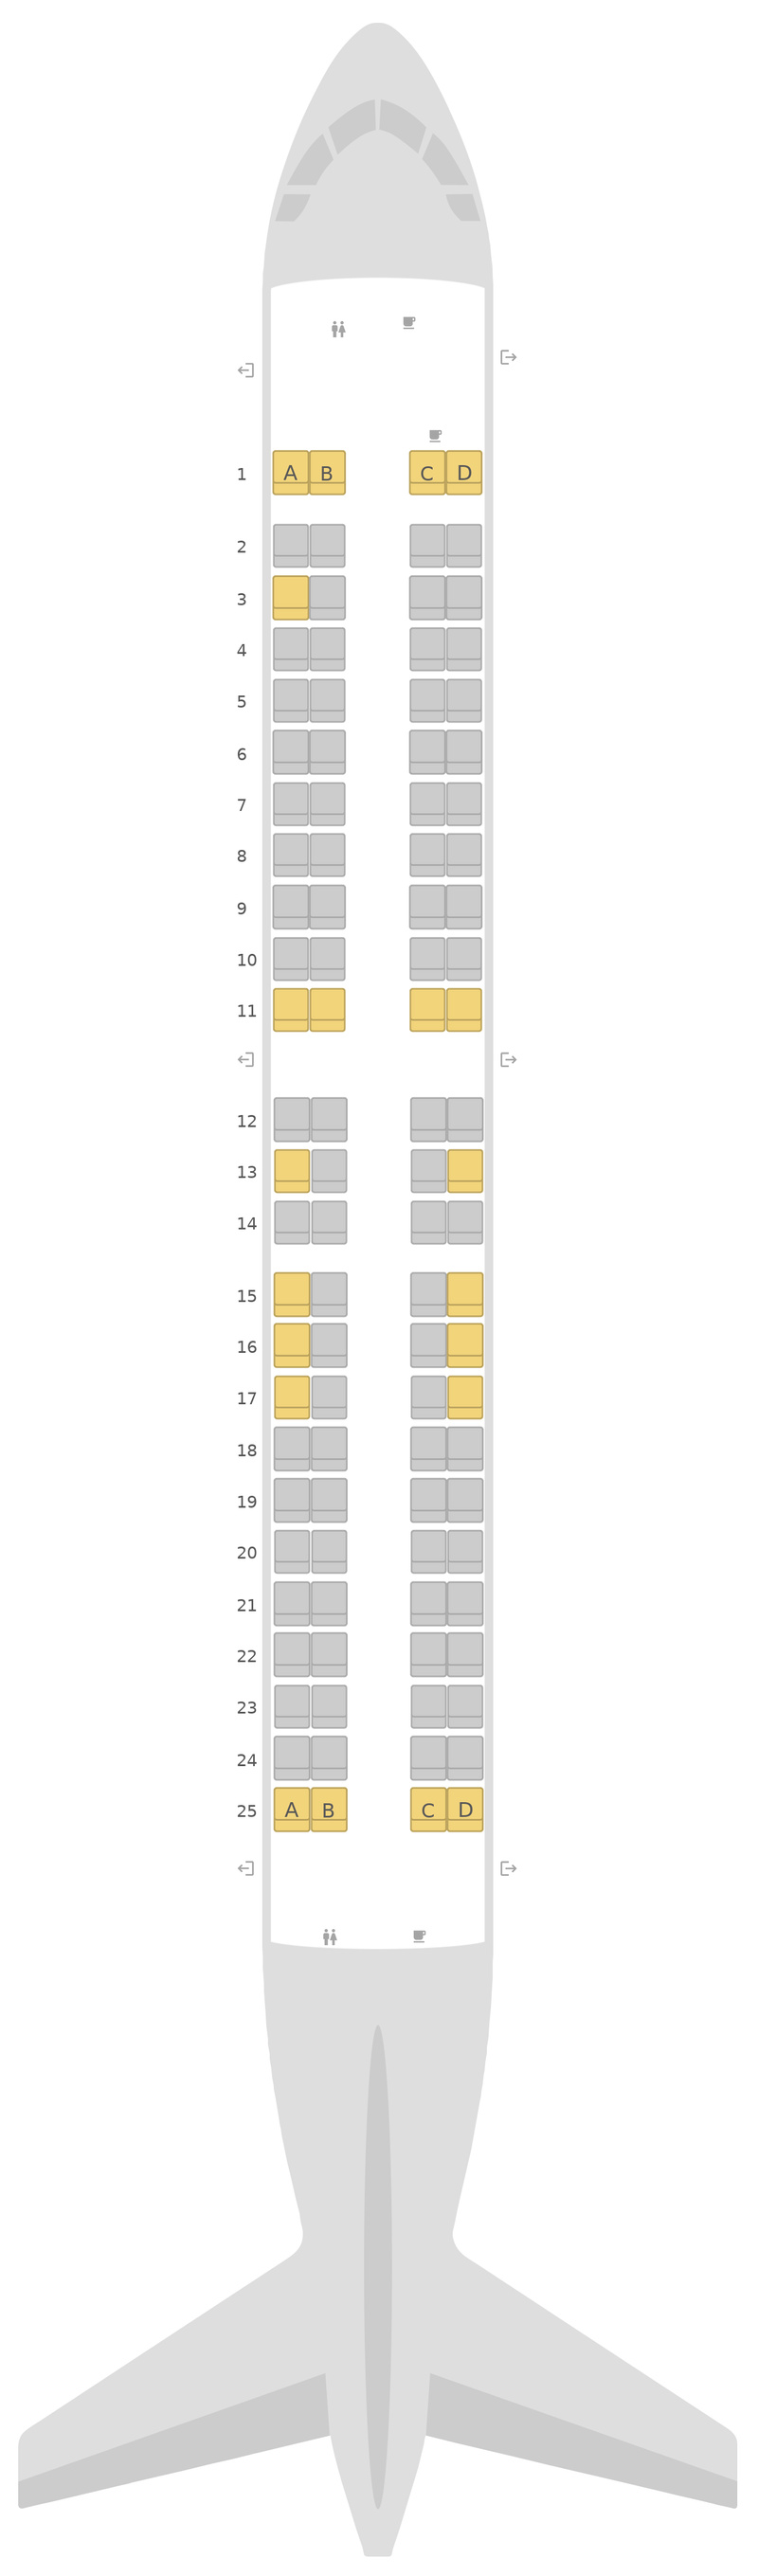 Seat Map Embraer E190 (E90) jetBlue Airways